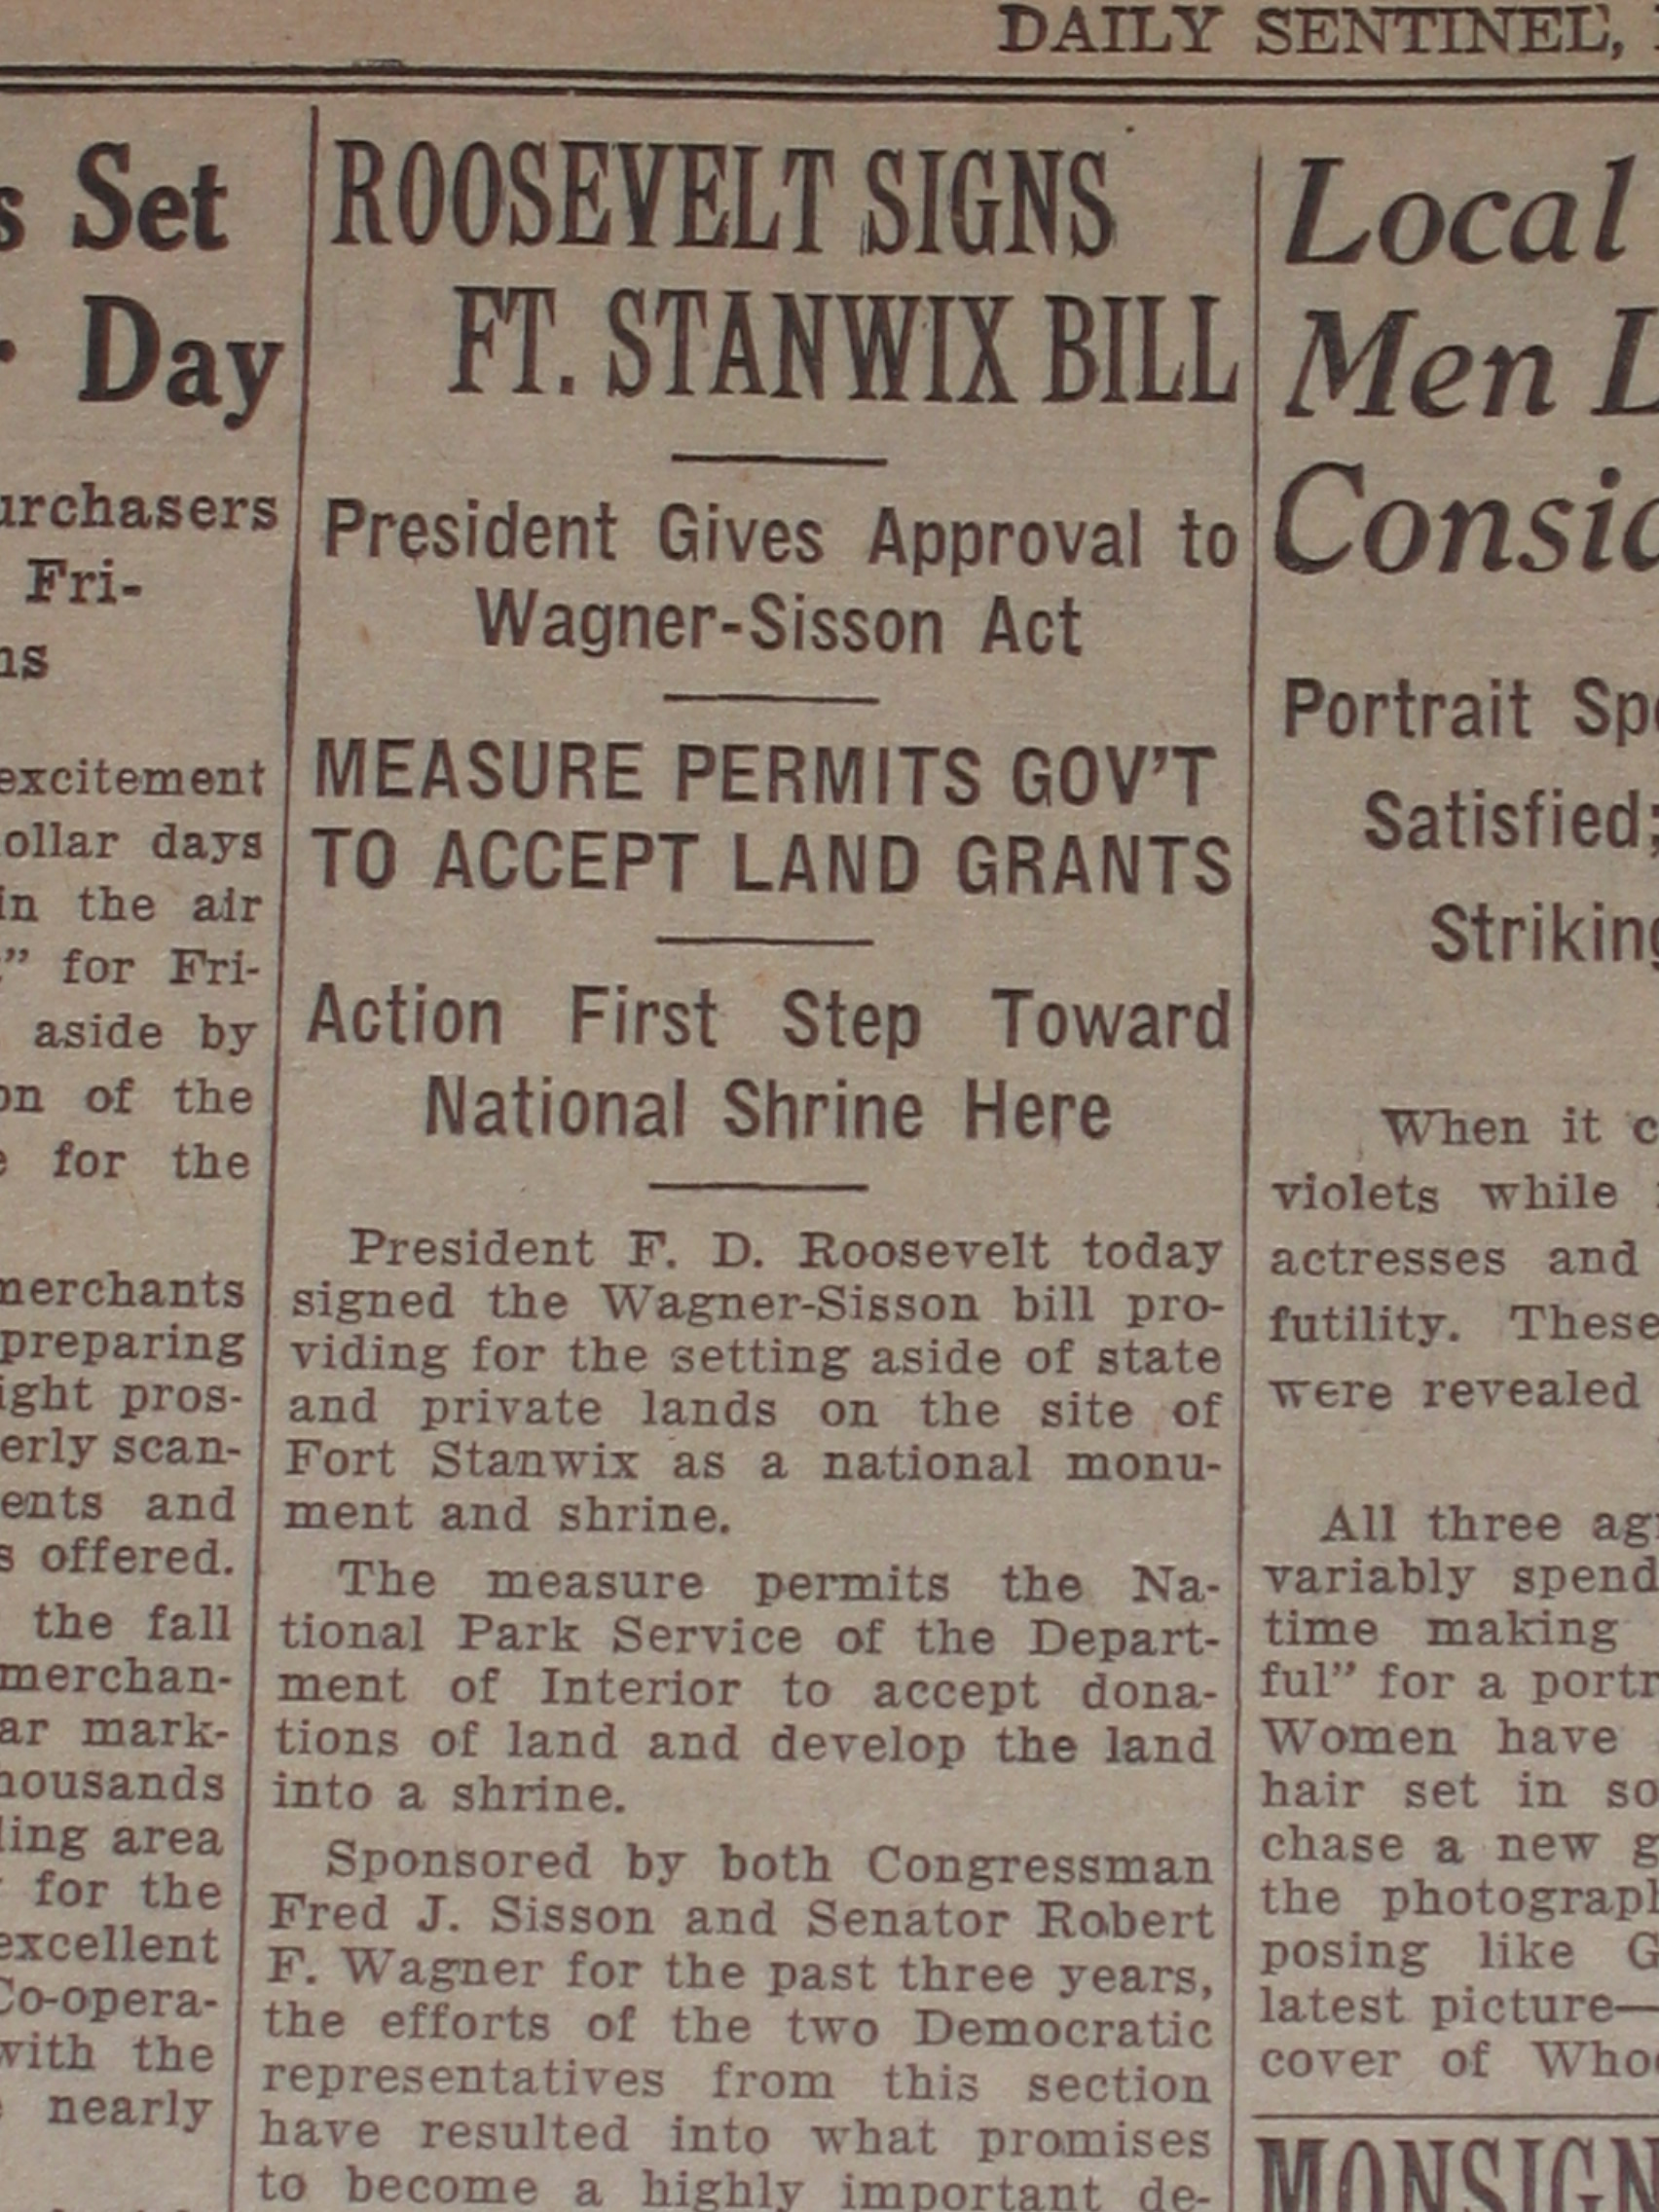 a newprint copy: BOLD PRINT: FDR Signs law to create new national shrine!